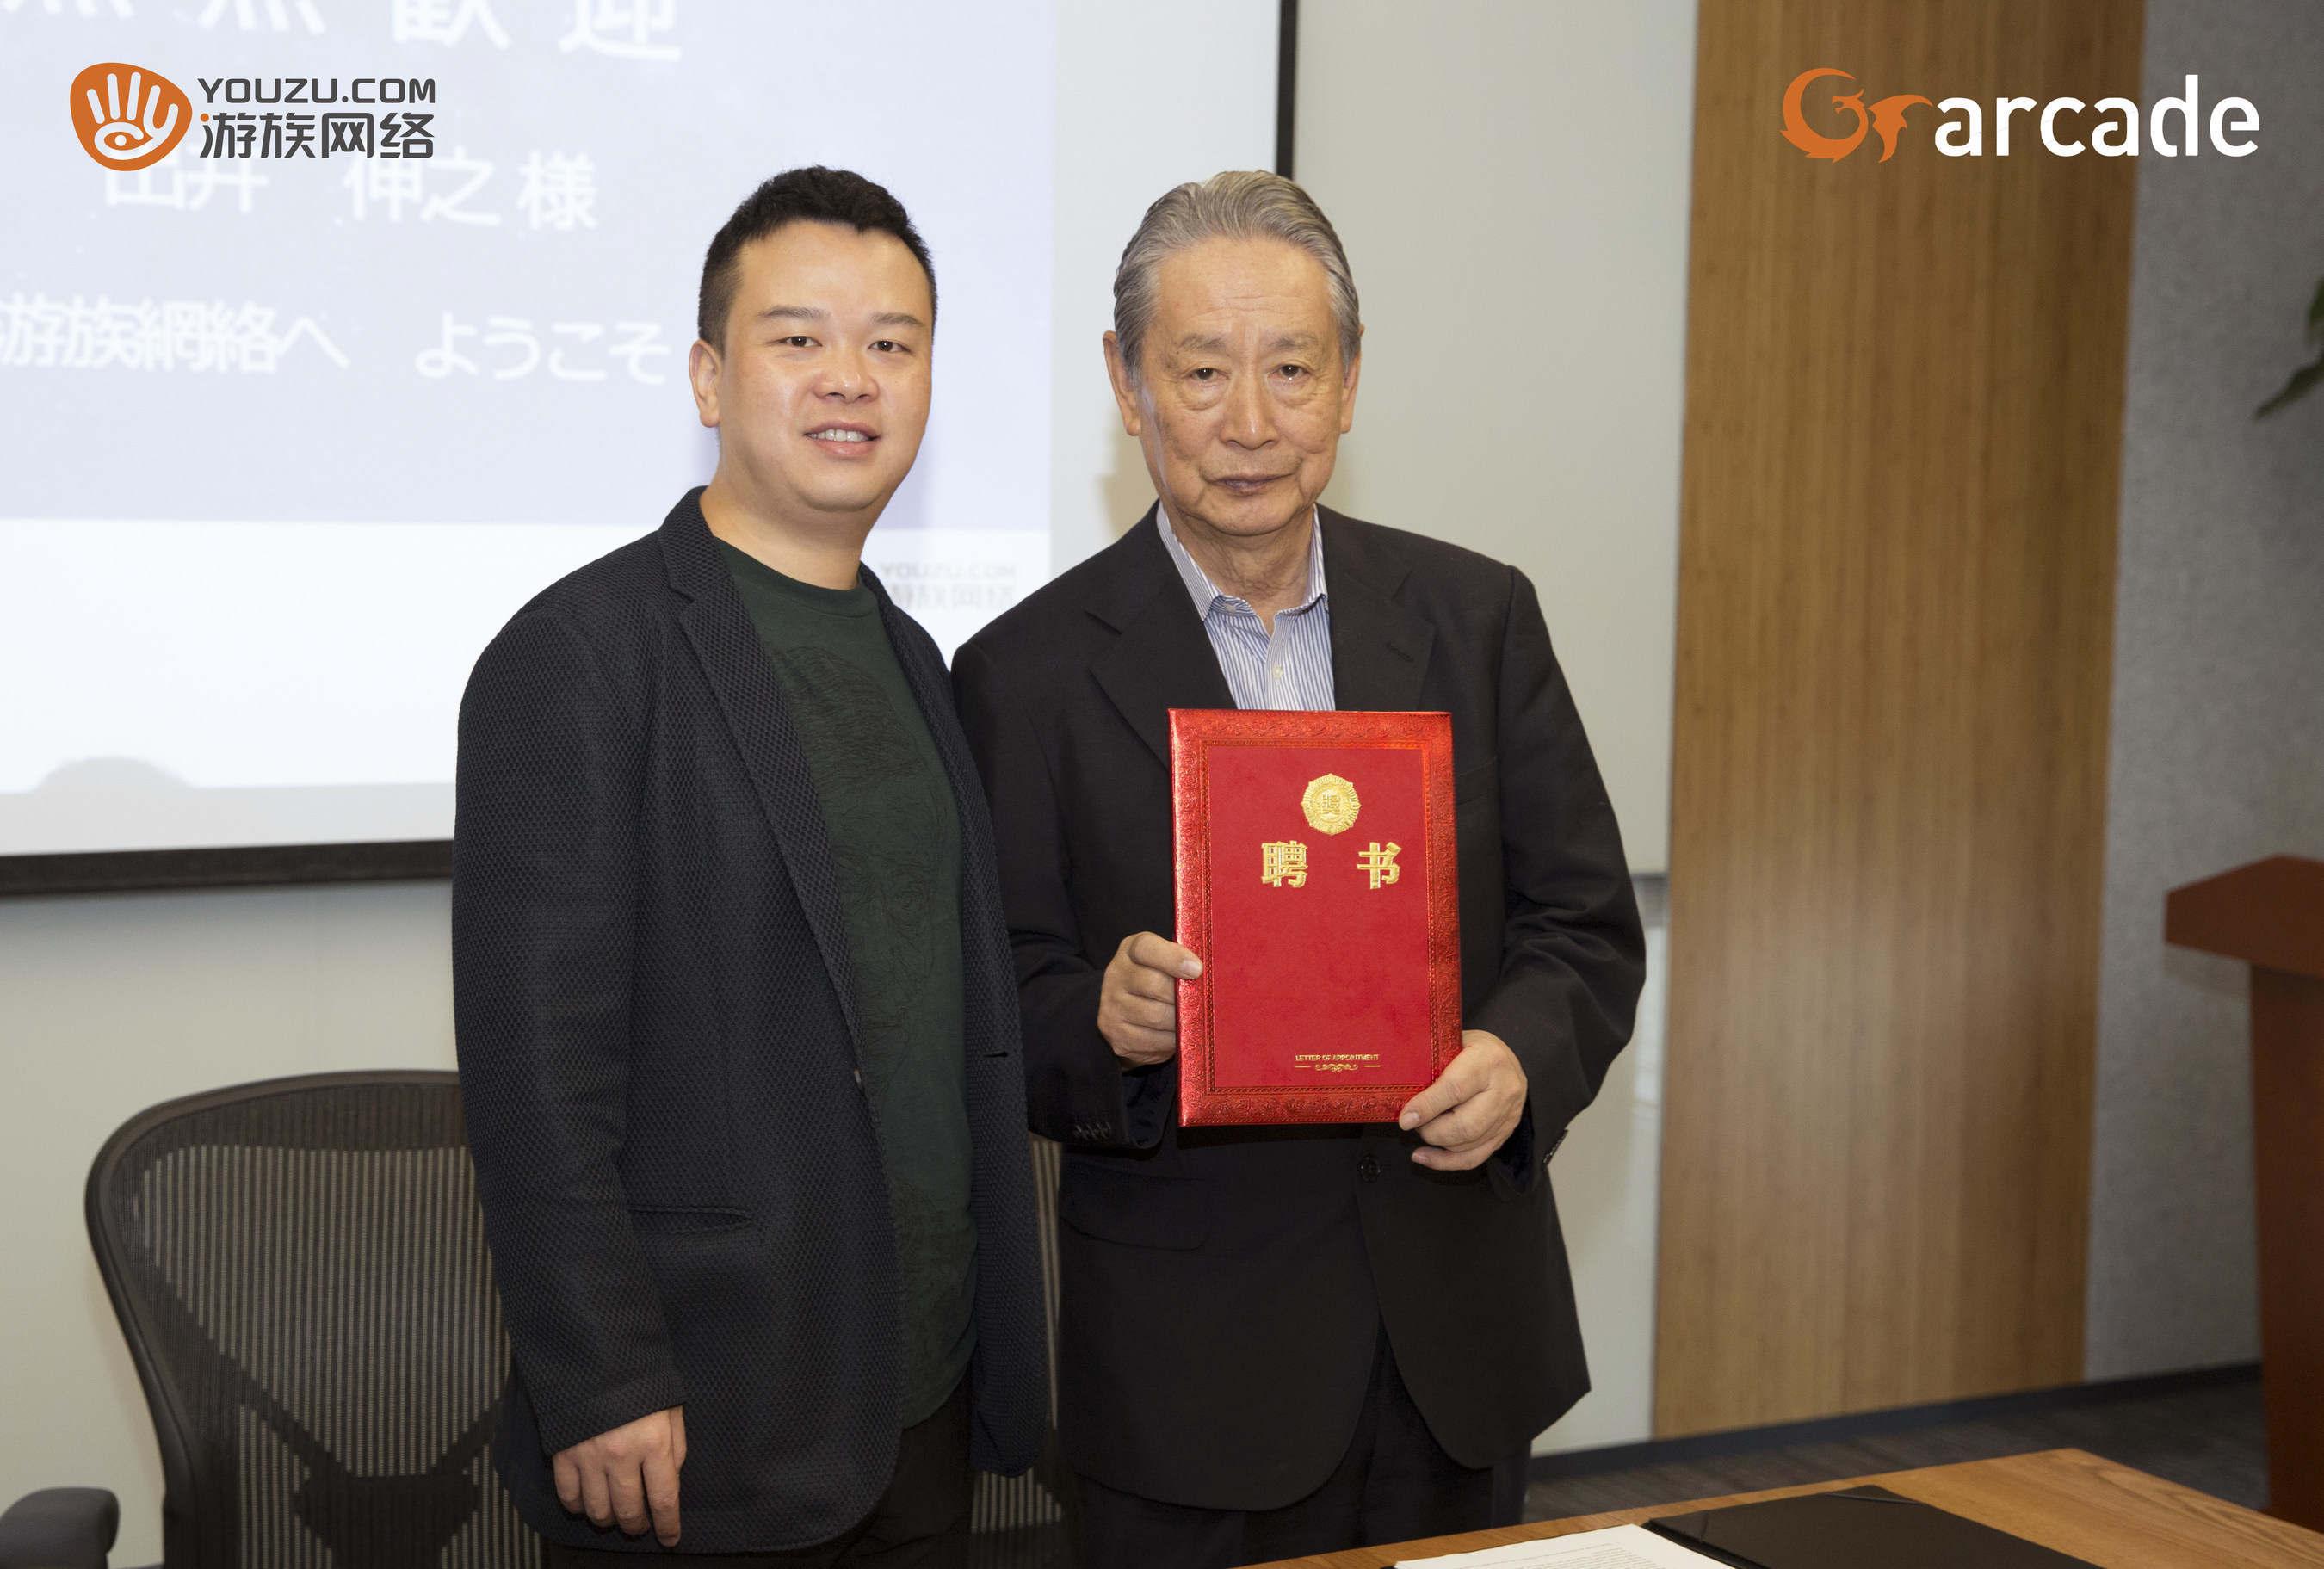 Youzu.com's Chairman & CEO Qi Lin presents Consultant Appointment Letter to Nobuyuki Idei